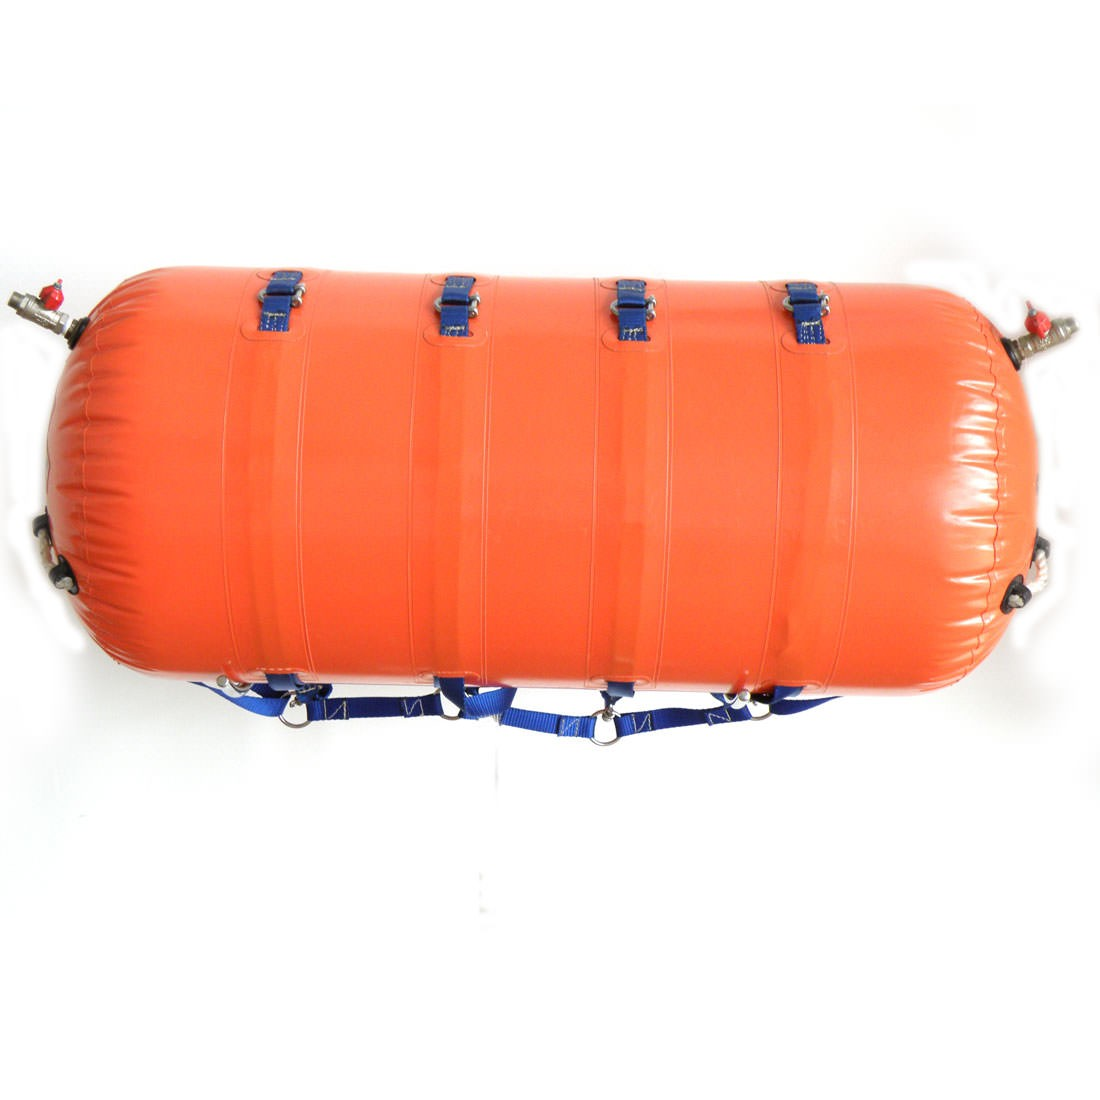 Seaflex 20 Ton Inflatable Buoyancy Unit